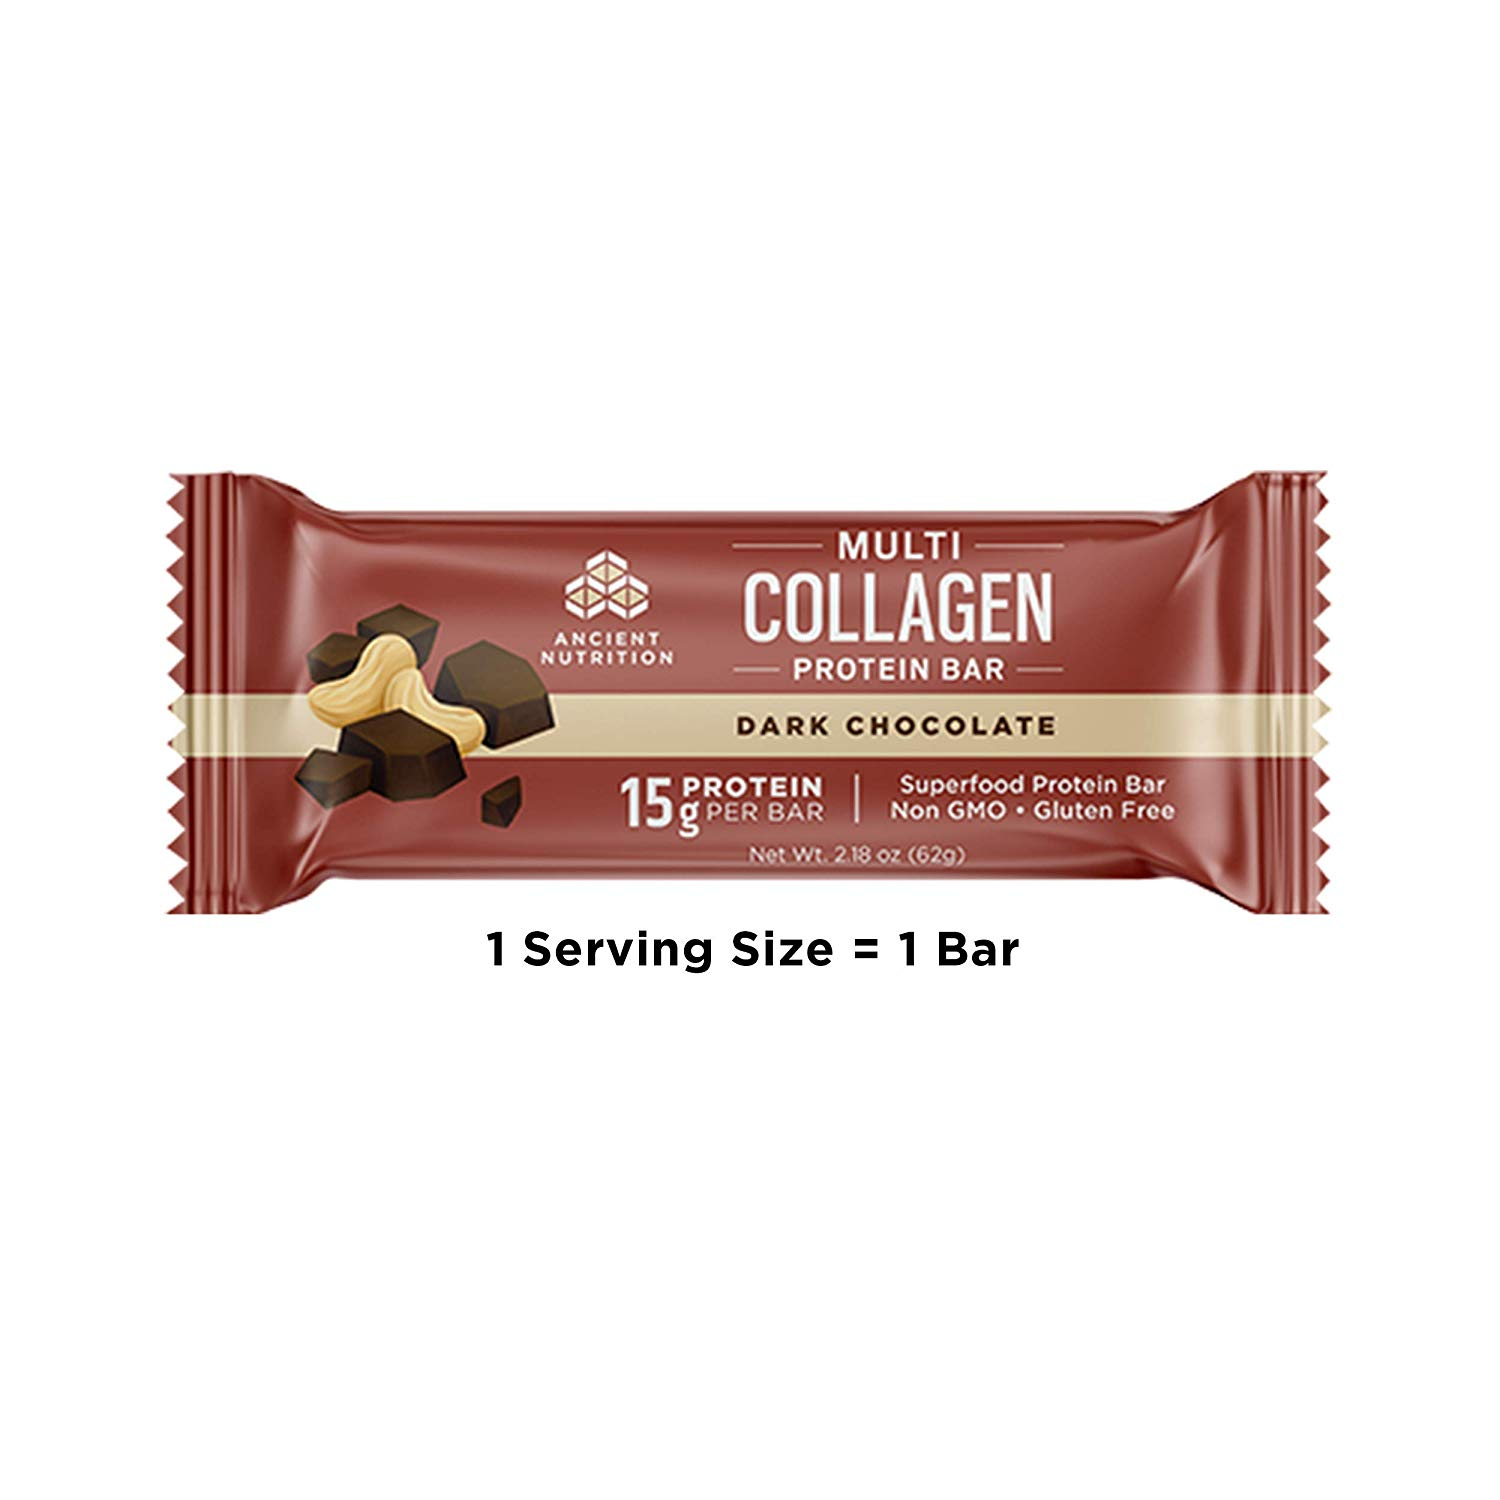 Multi Collagen Protein Bar